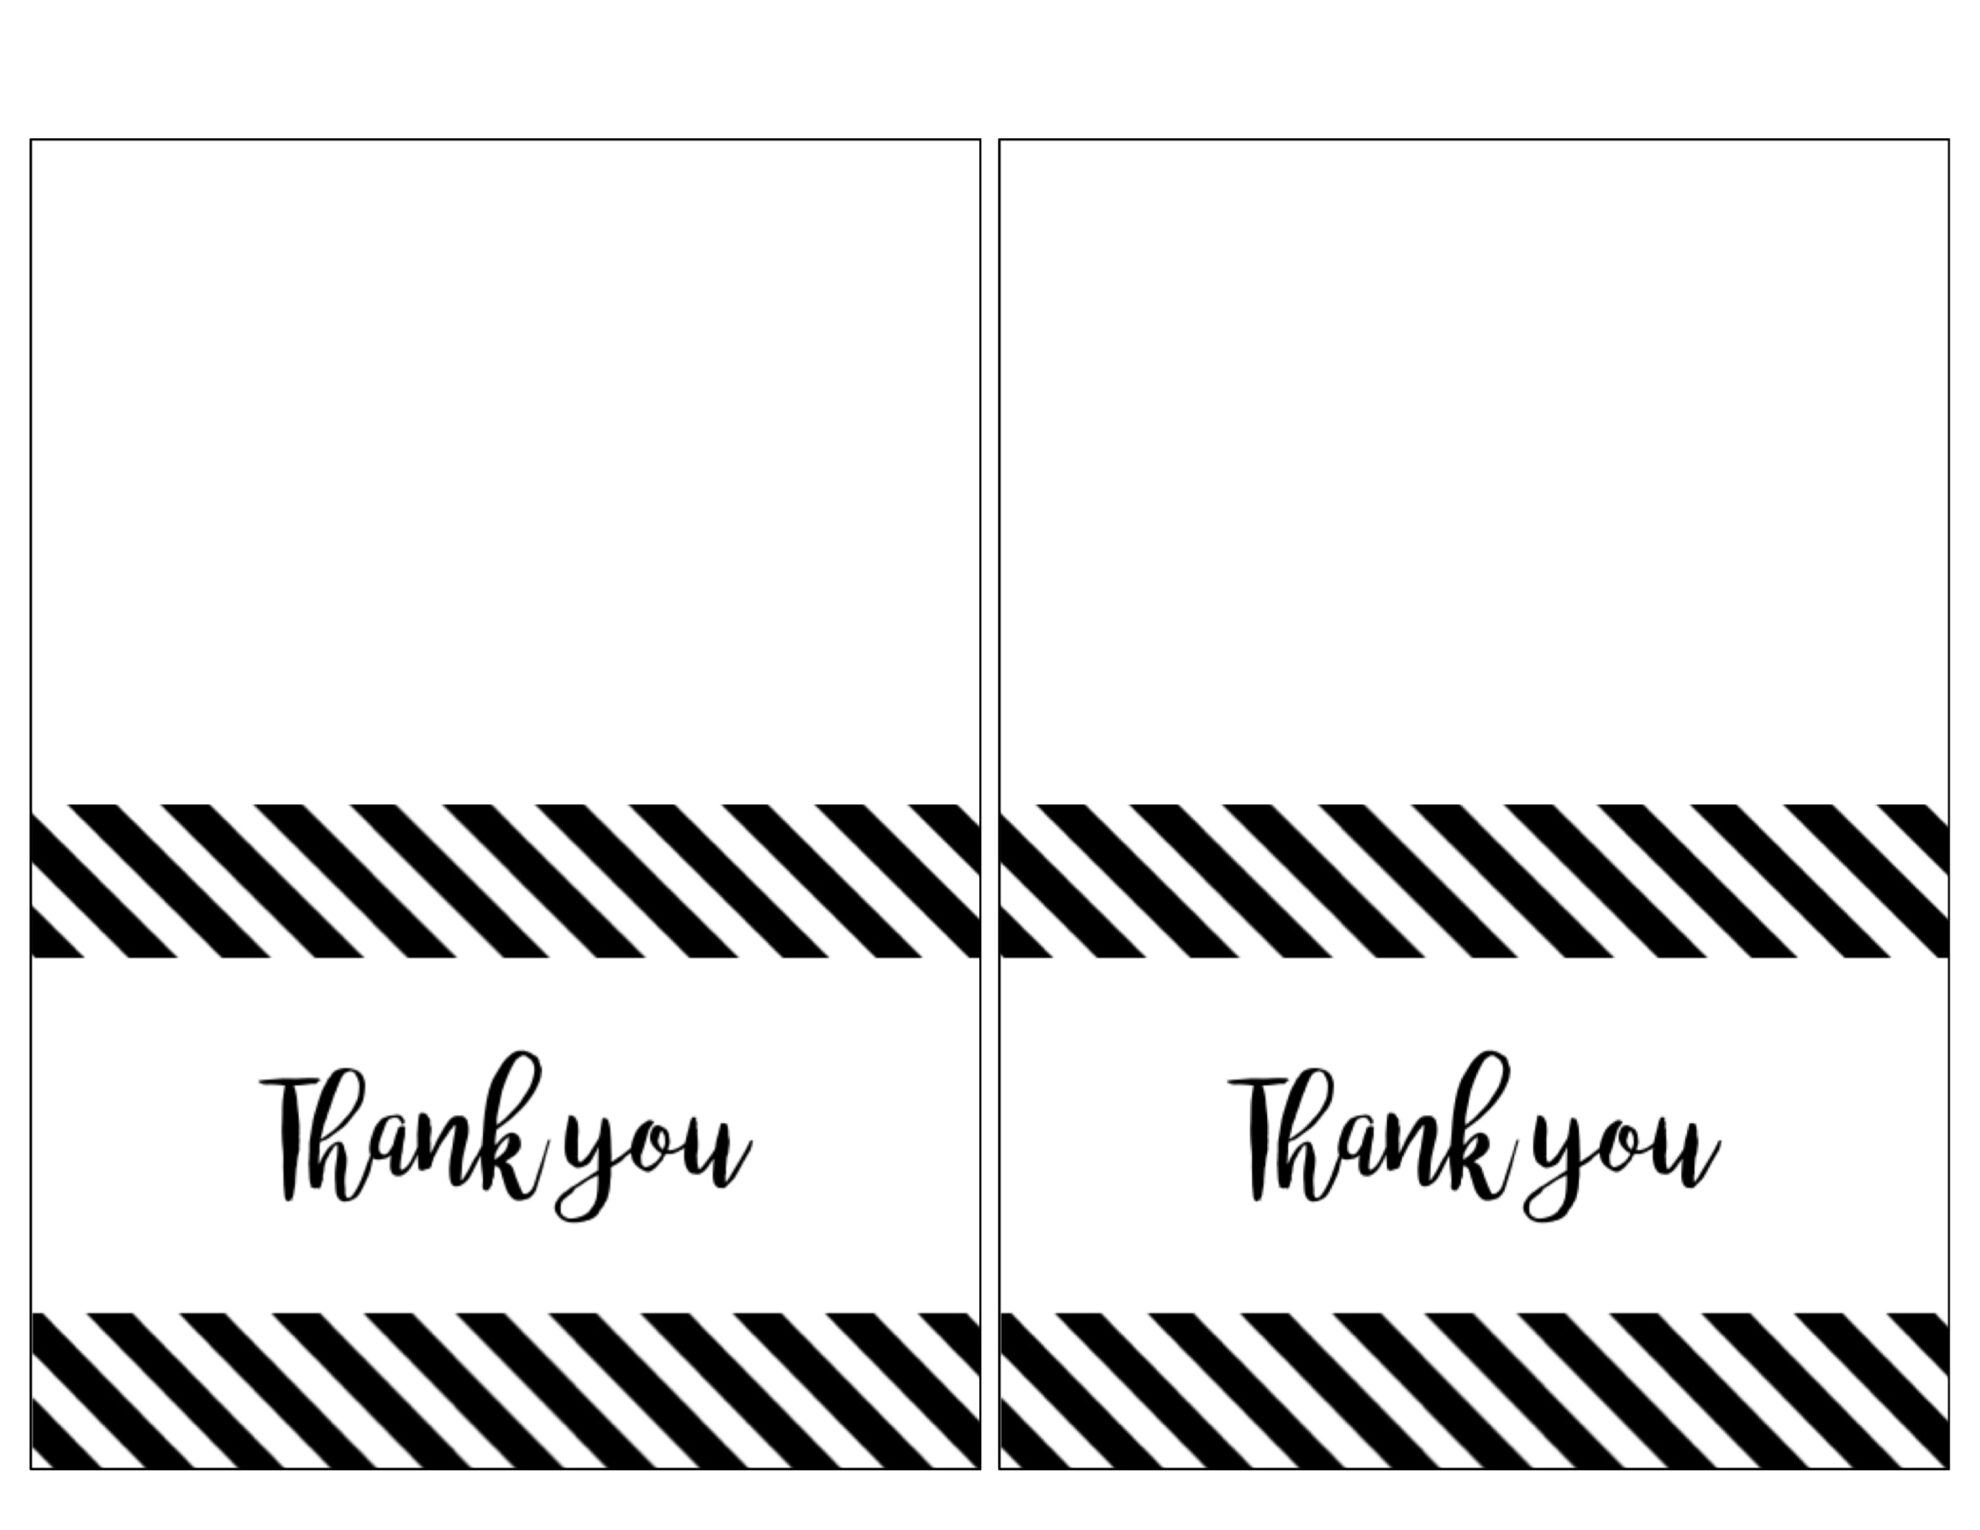 photo regarding Printable Thank You Cards for Students called Totally free Thank Yourself Playing cards Print No cost Printable Black and White